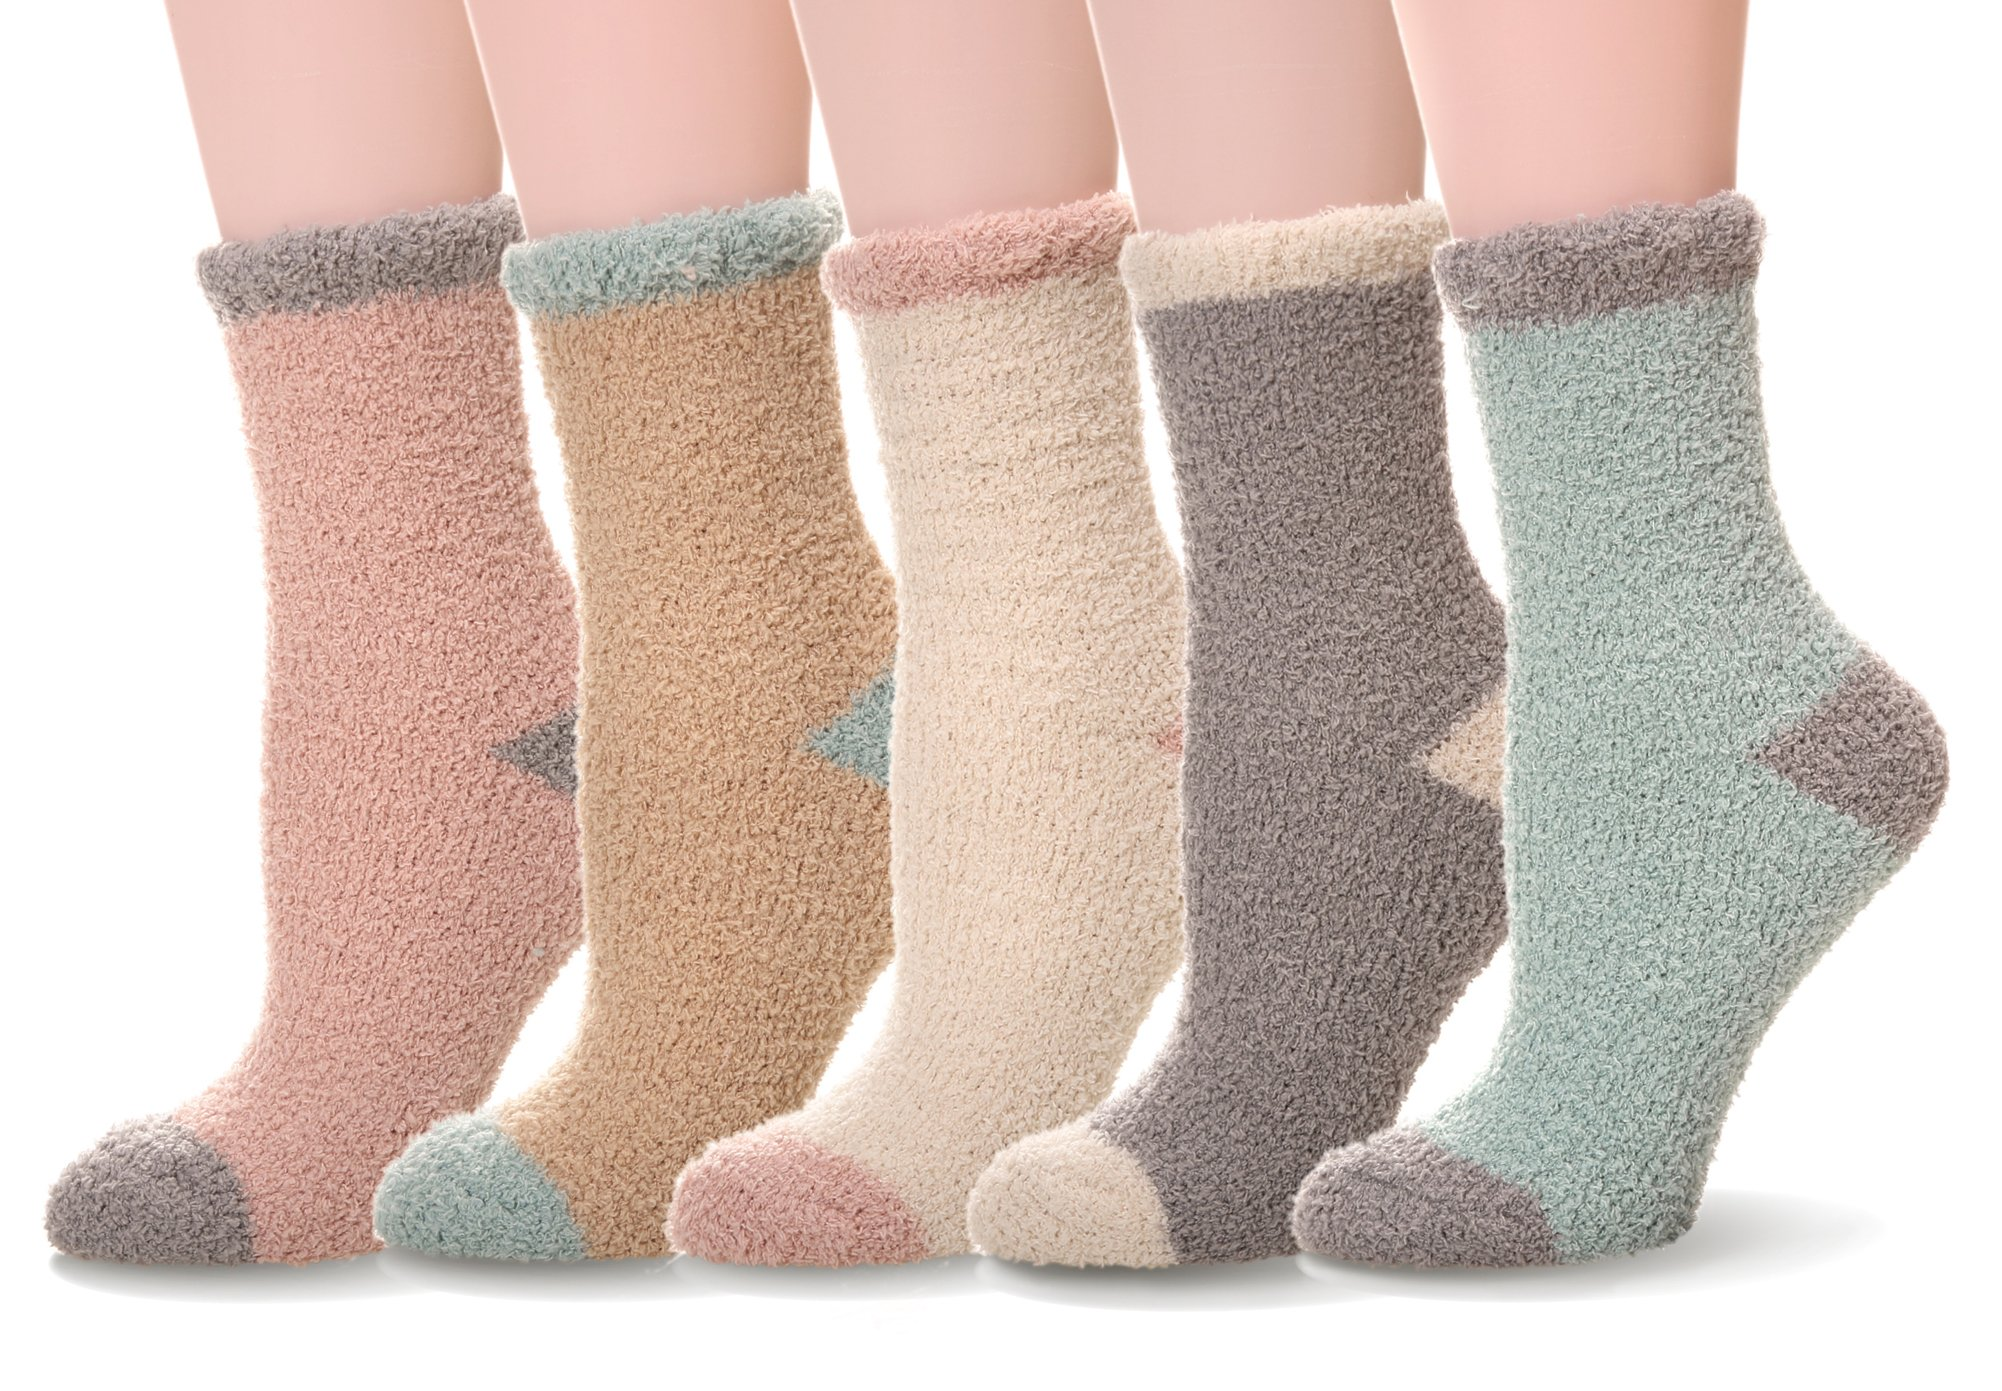 WENER Women's Womens 5 pairs Super Soft Microfiber Fuzzy Winter Warm Slipper Home Socks (Solid color)